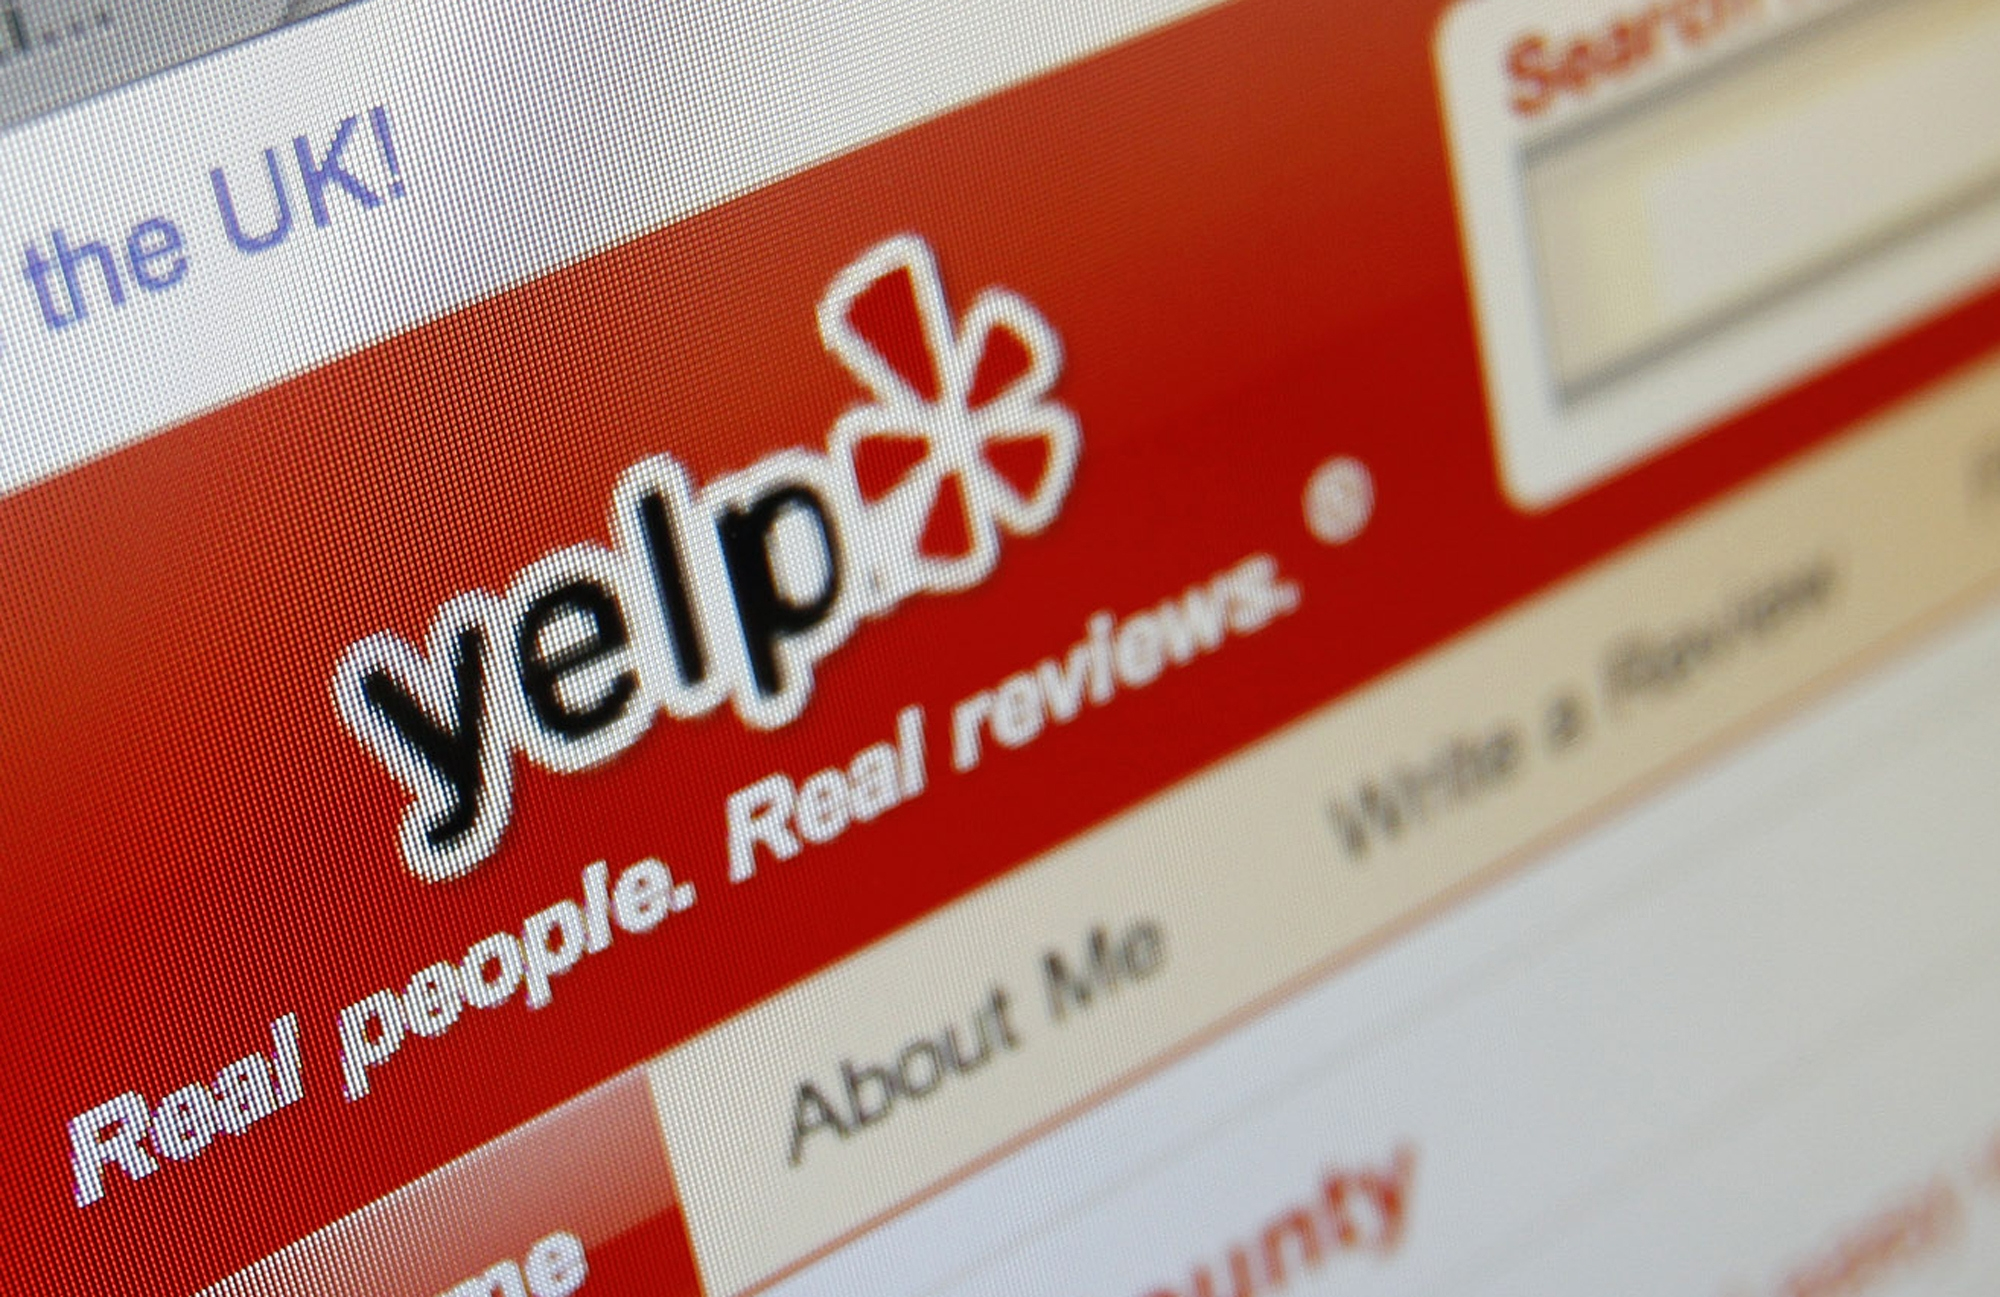 Consumers need to be wary of fake reviews on consumer review sites like Yelp.